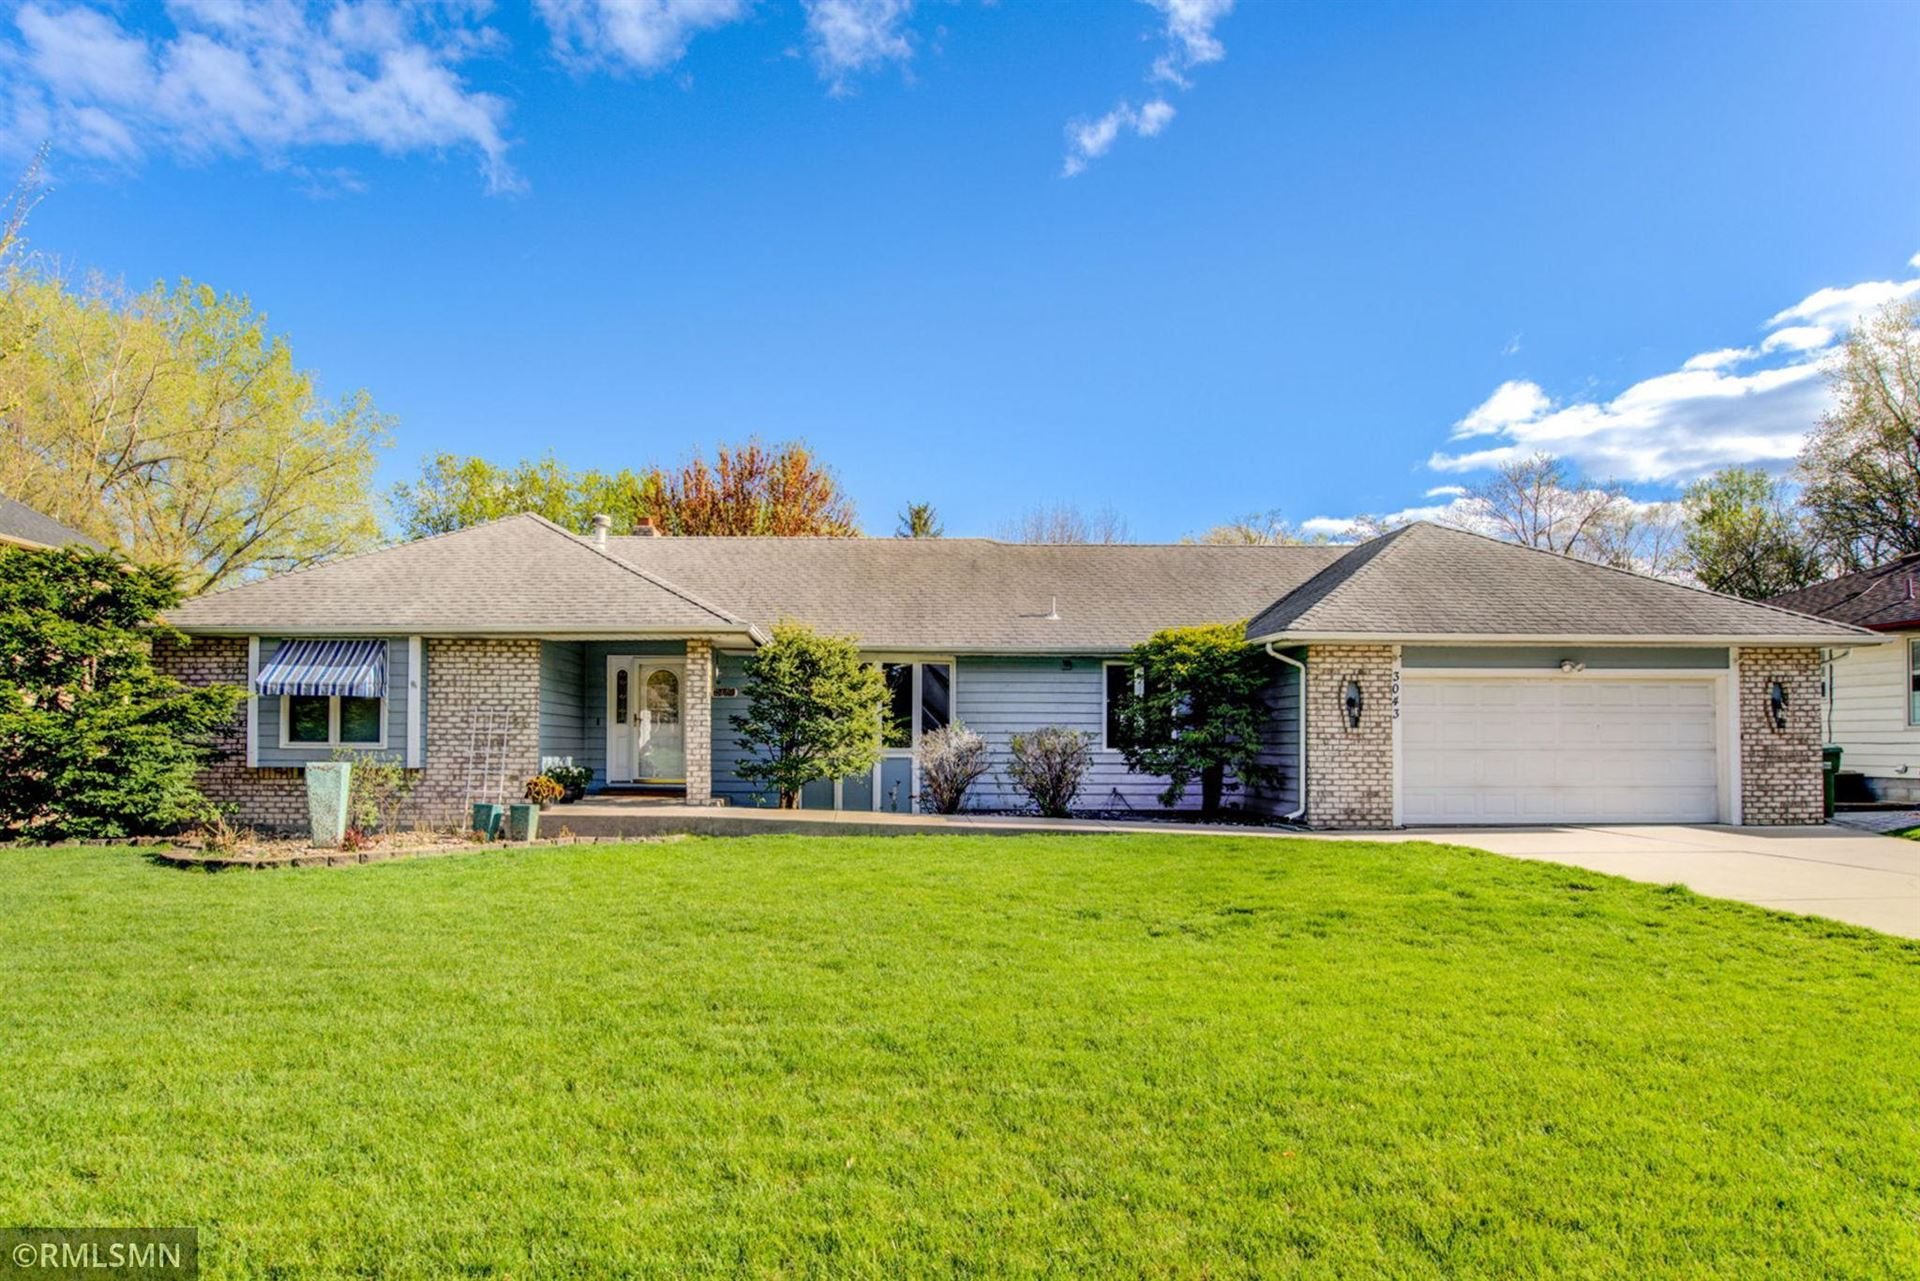 3043 Innsbruck Drive, New Brighton, MN 55112 - MLS#: 5752739